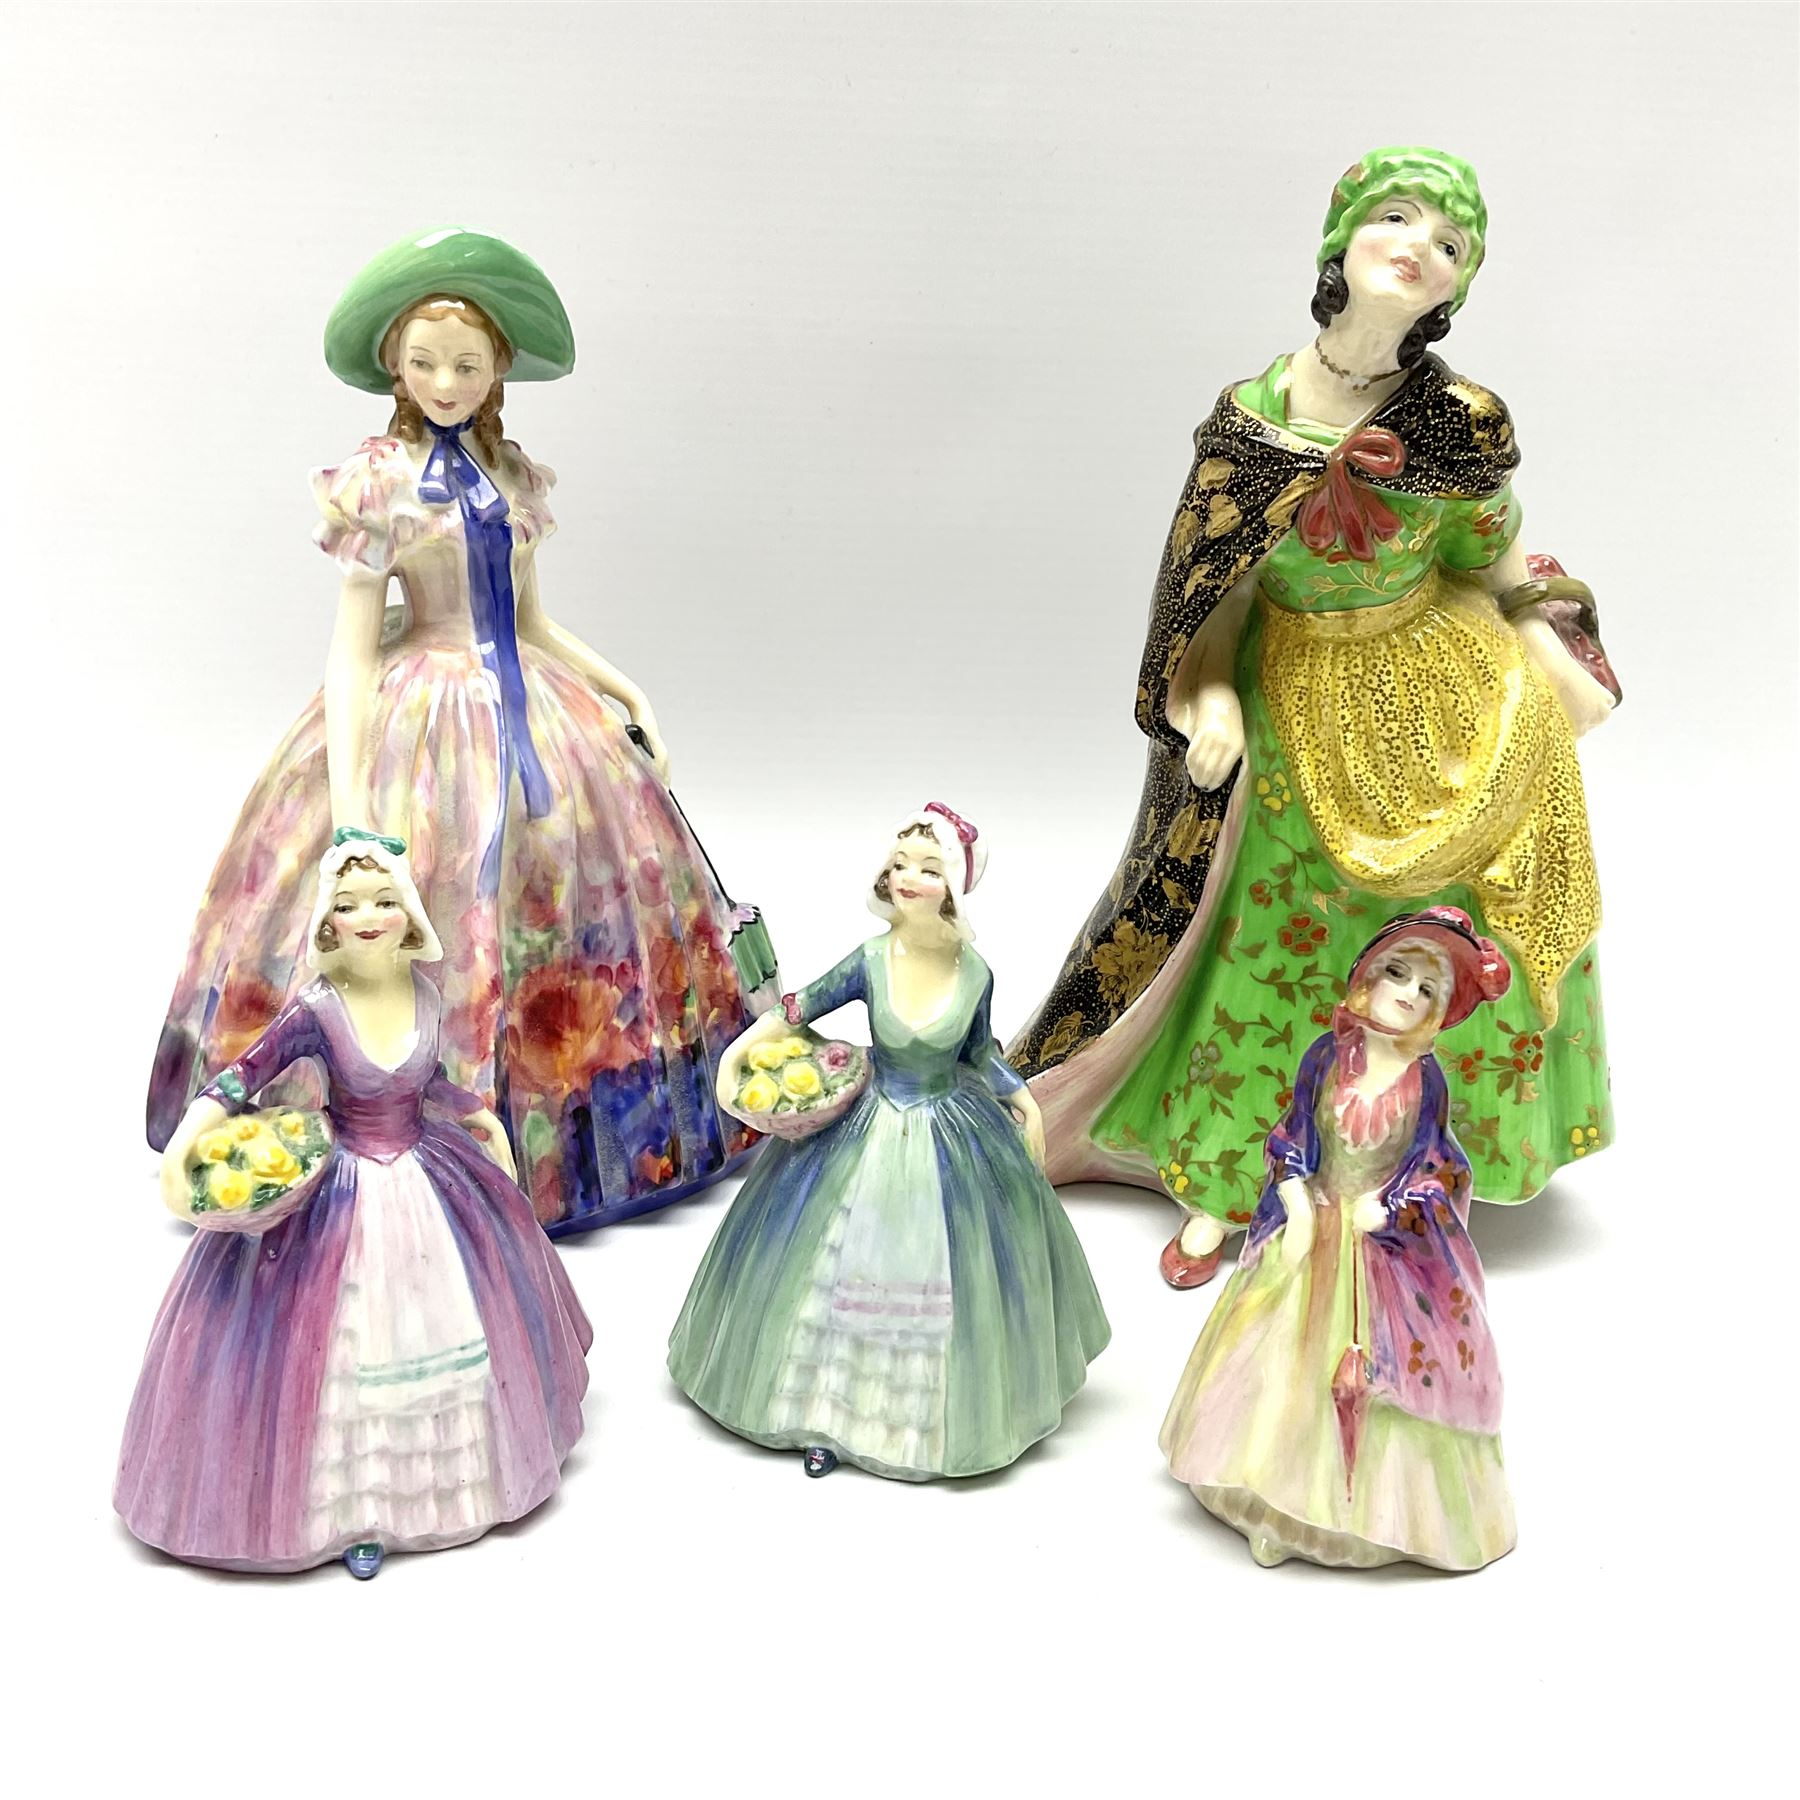 A group of Royal Doulton figures